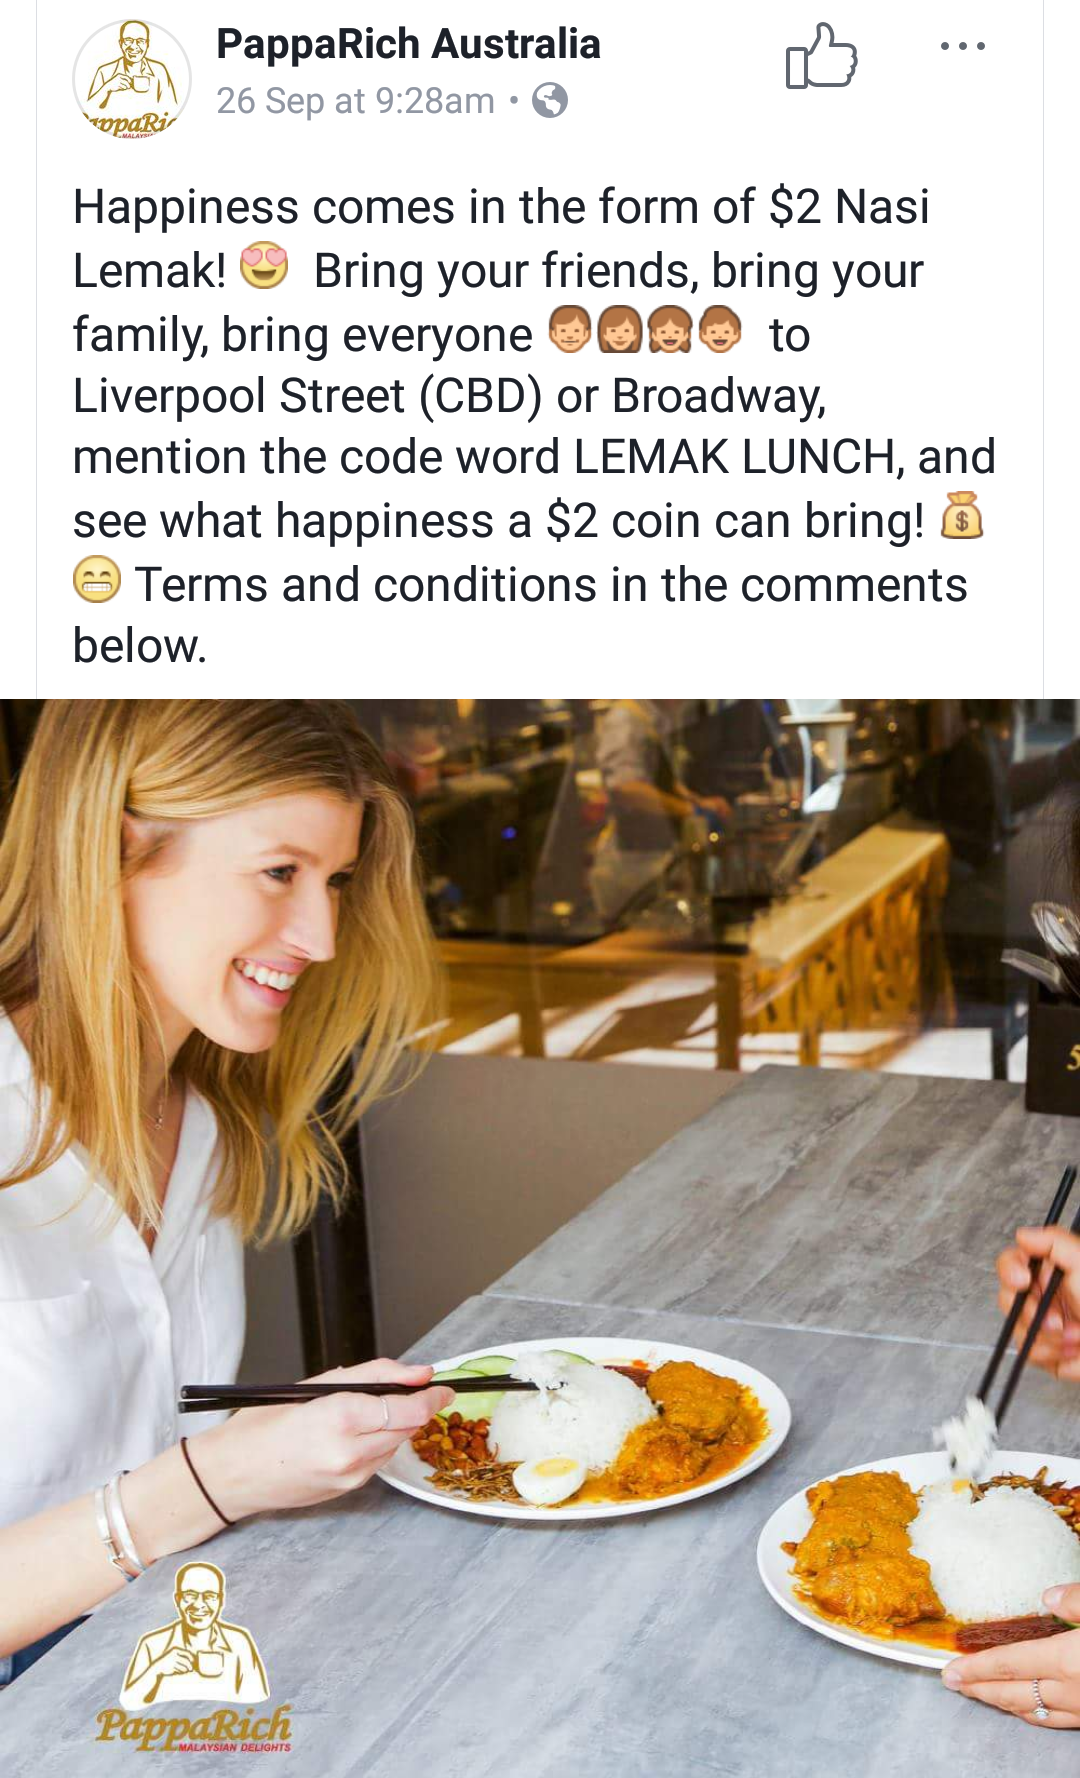 Image from PappaRich Australia Facebook